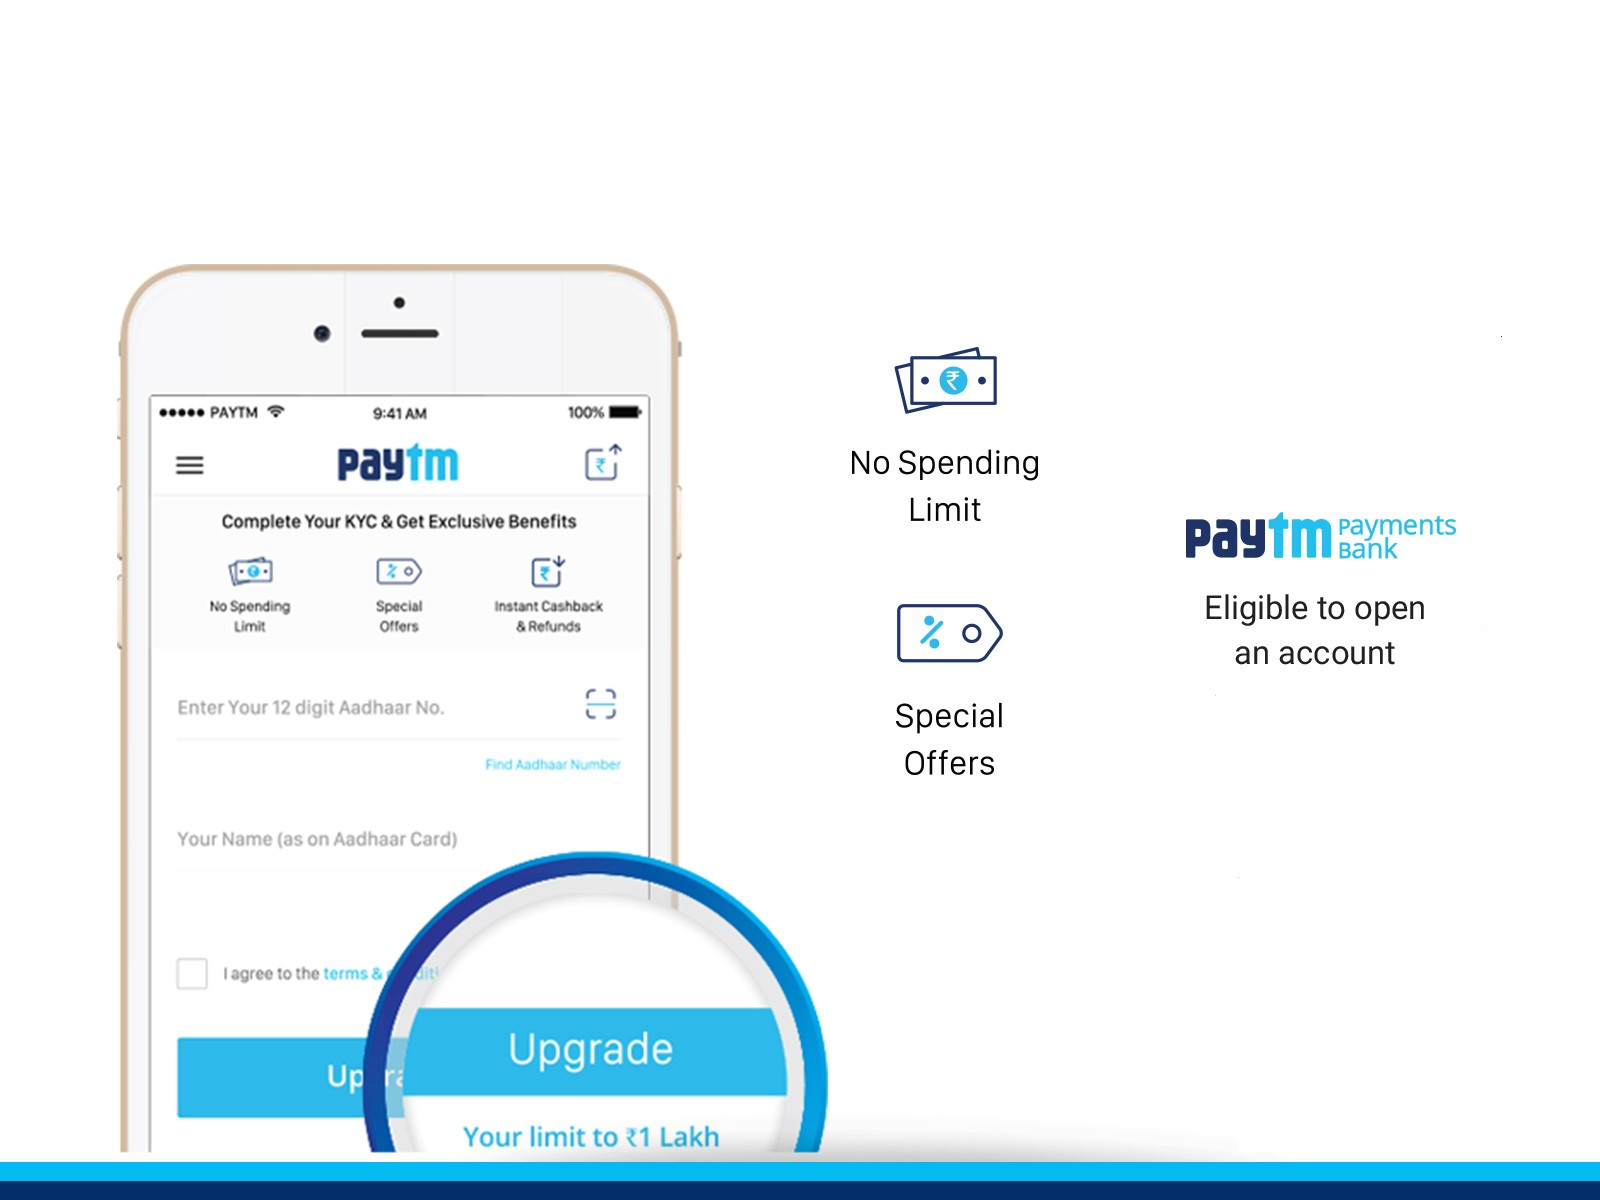 Get Your Paytm Kyc Done Store Up To Rs 1 Lakh And Avail Other Benefits